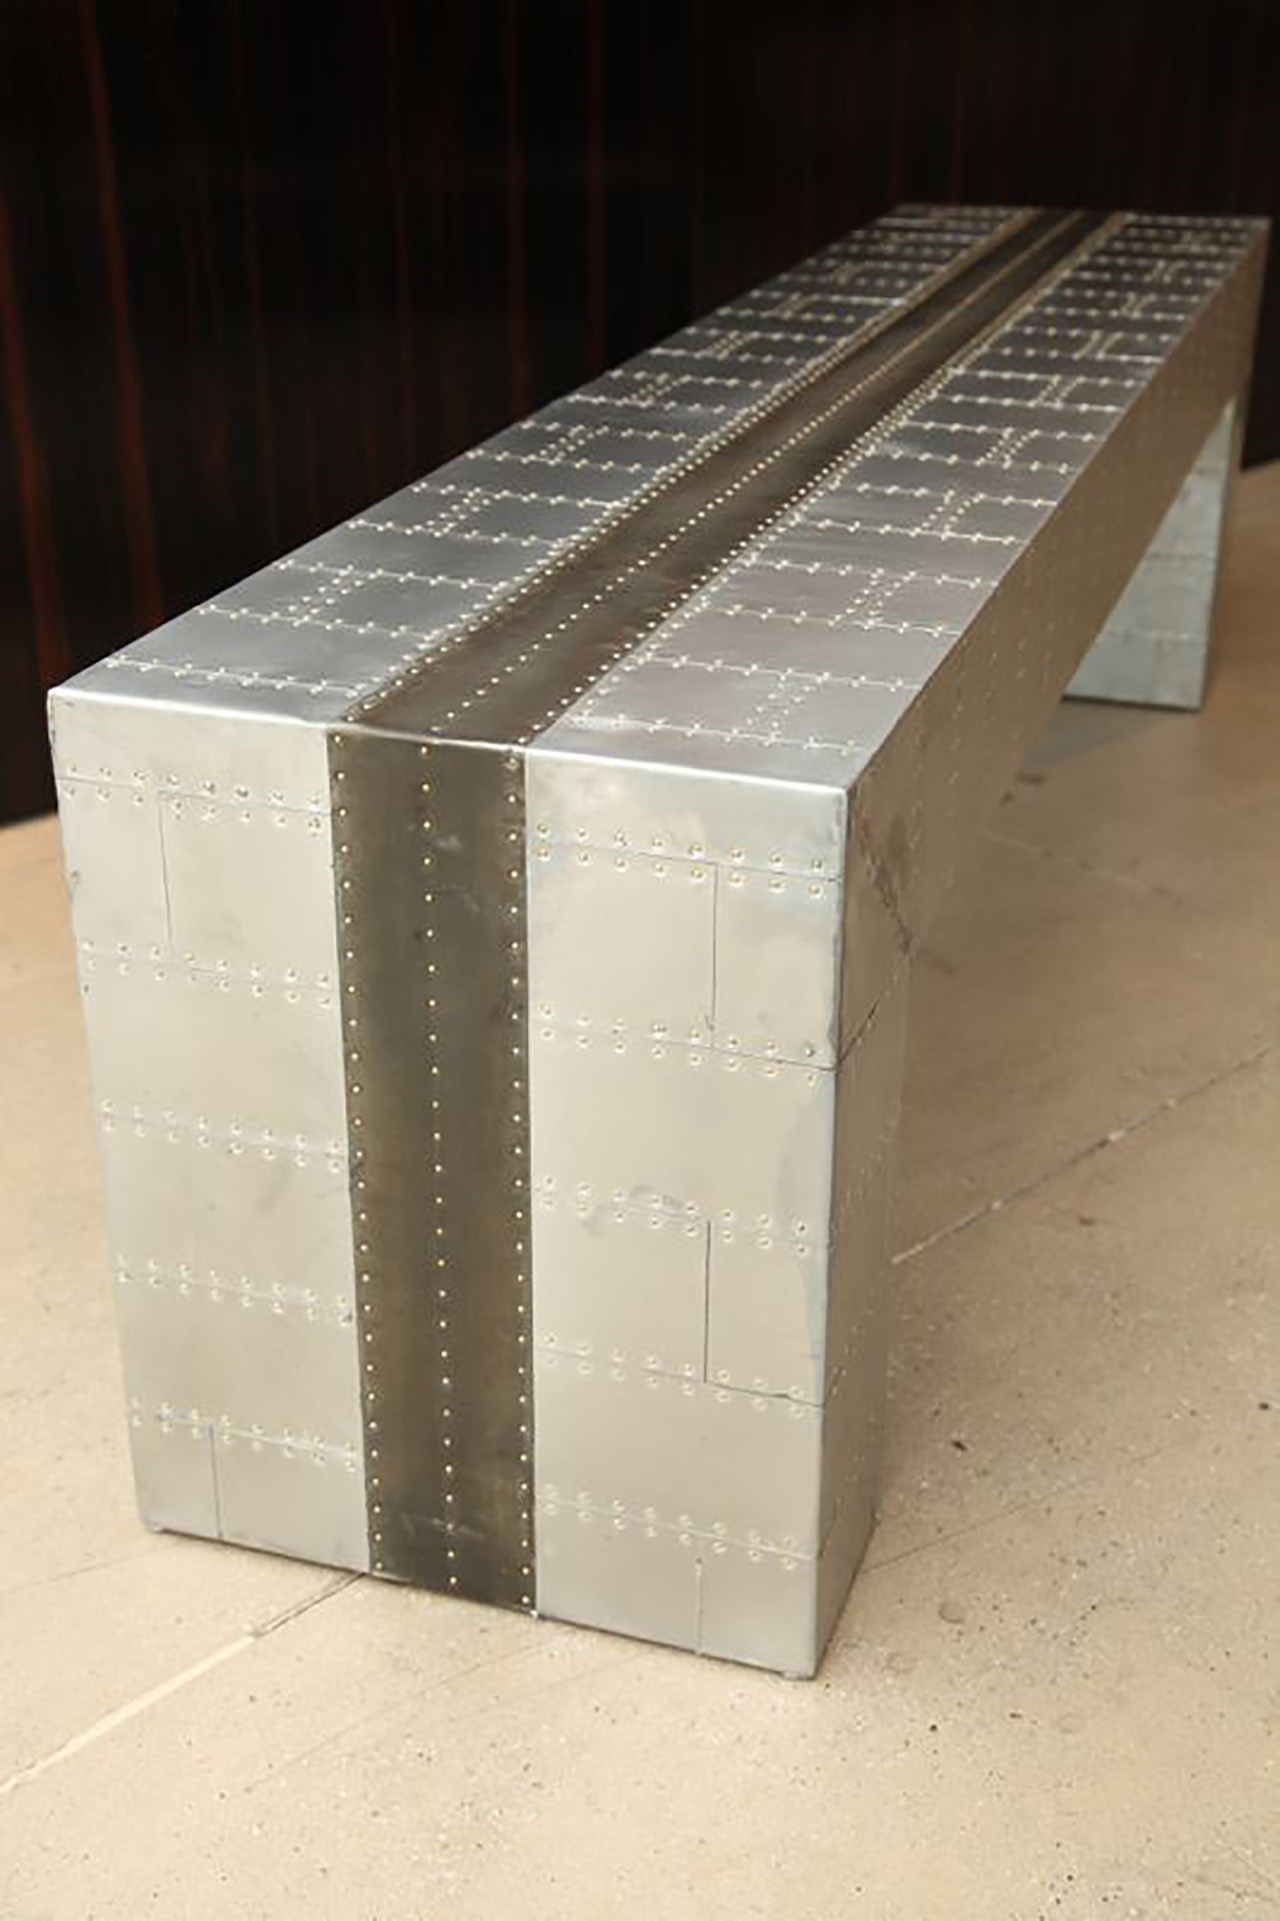 Sheet Zinc with Rivets Bench - La Bastille